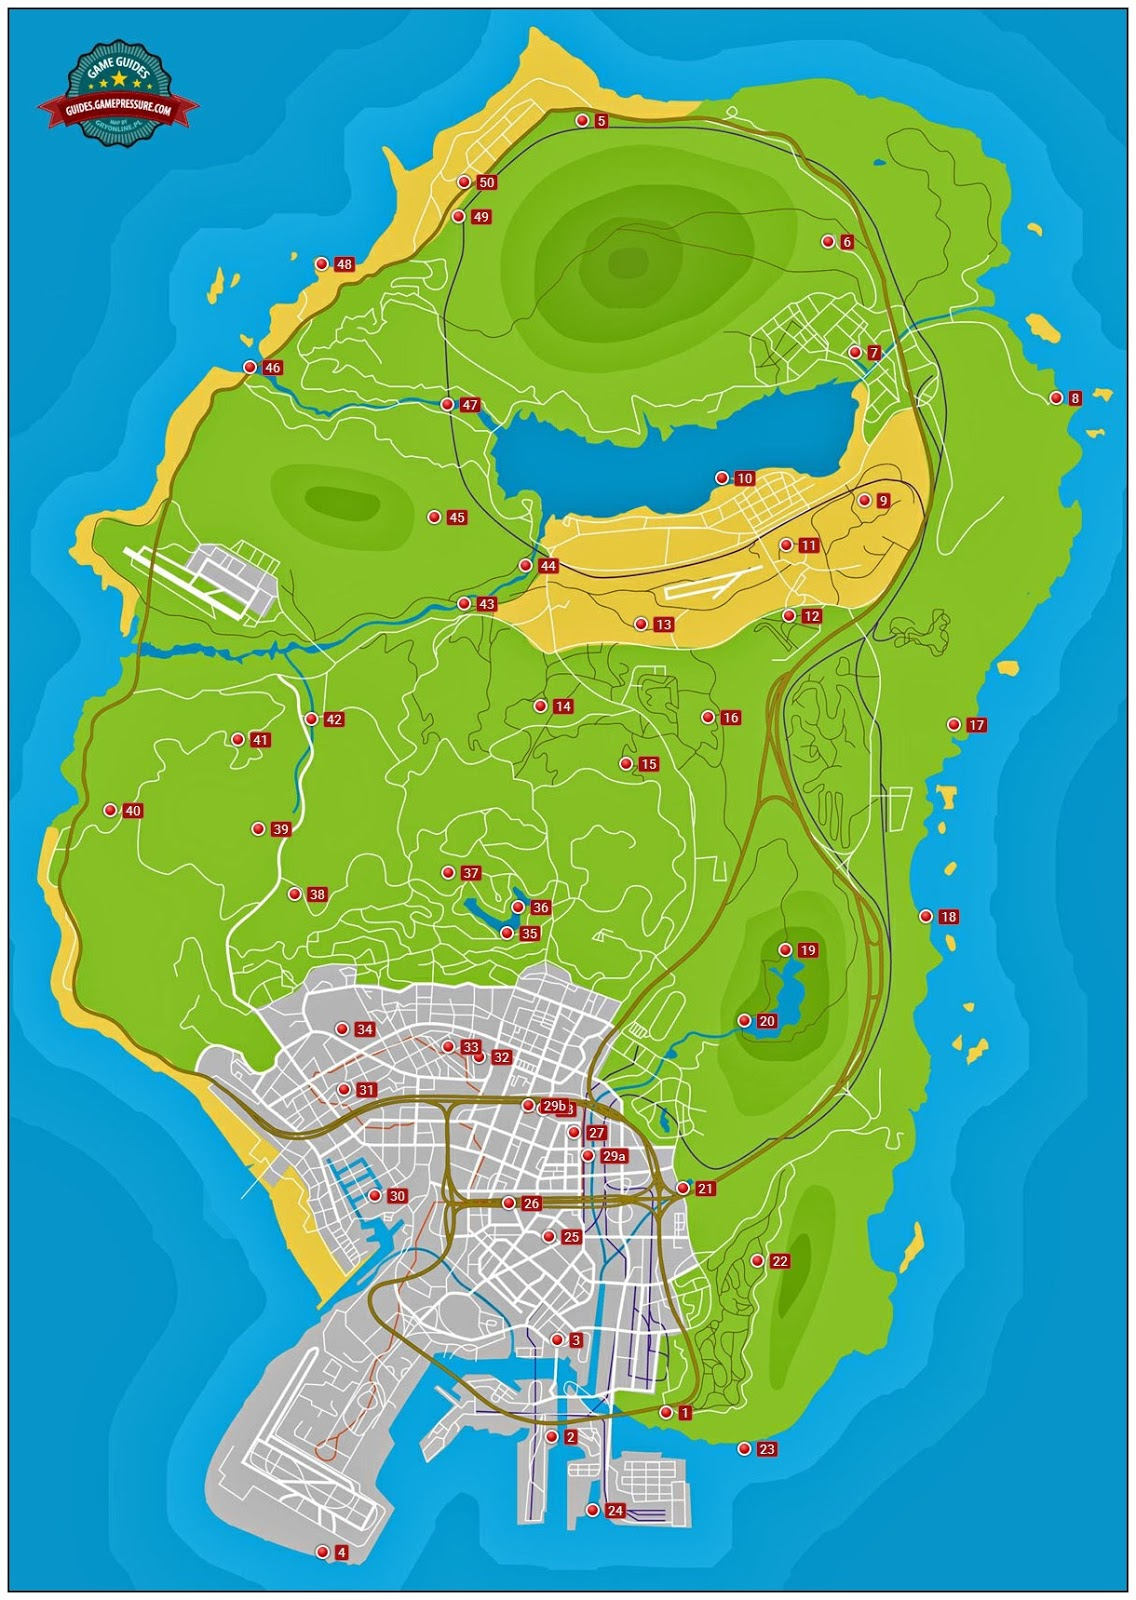 gta 5 spaceship parts map - Spaceship parts in GTA V GTA 5 Help